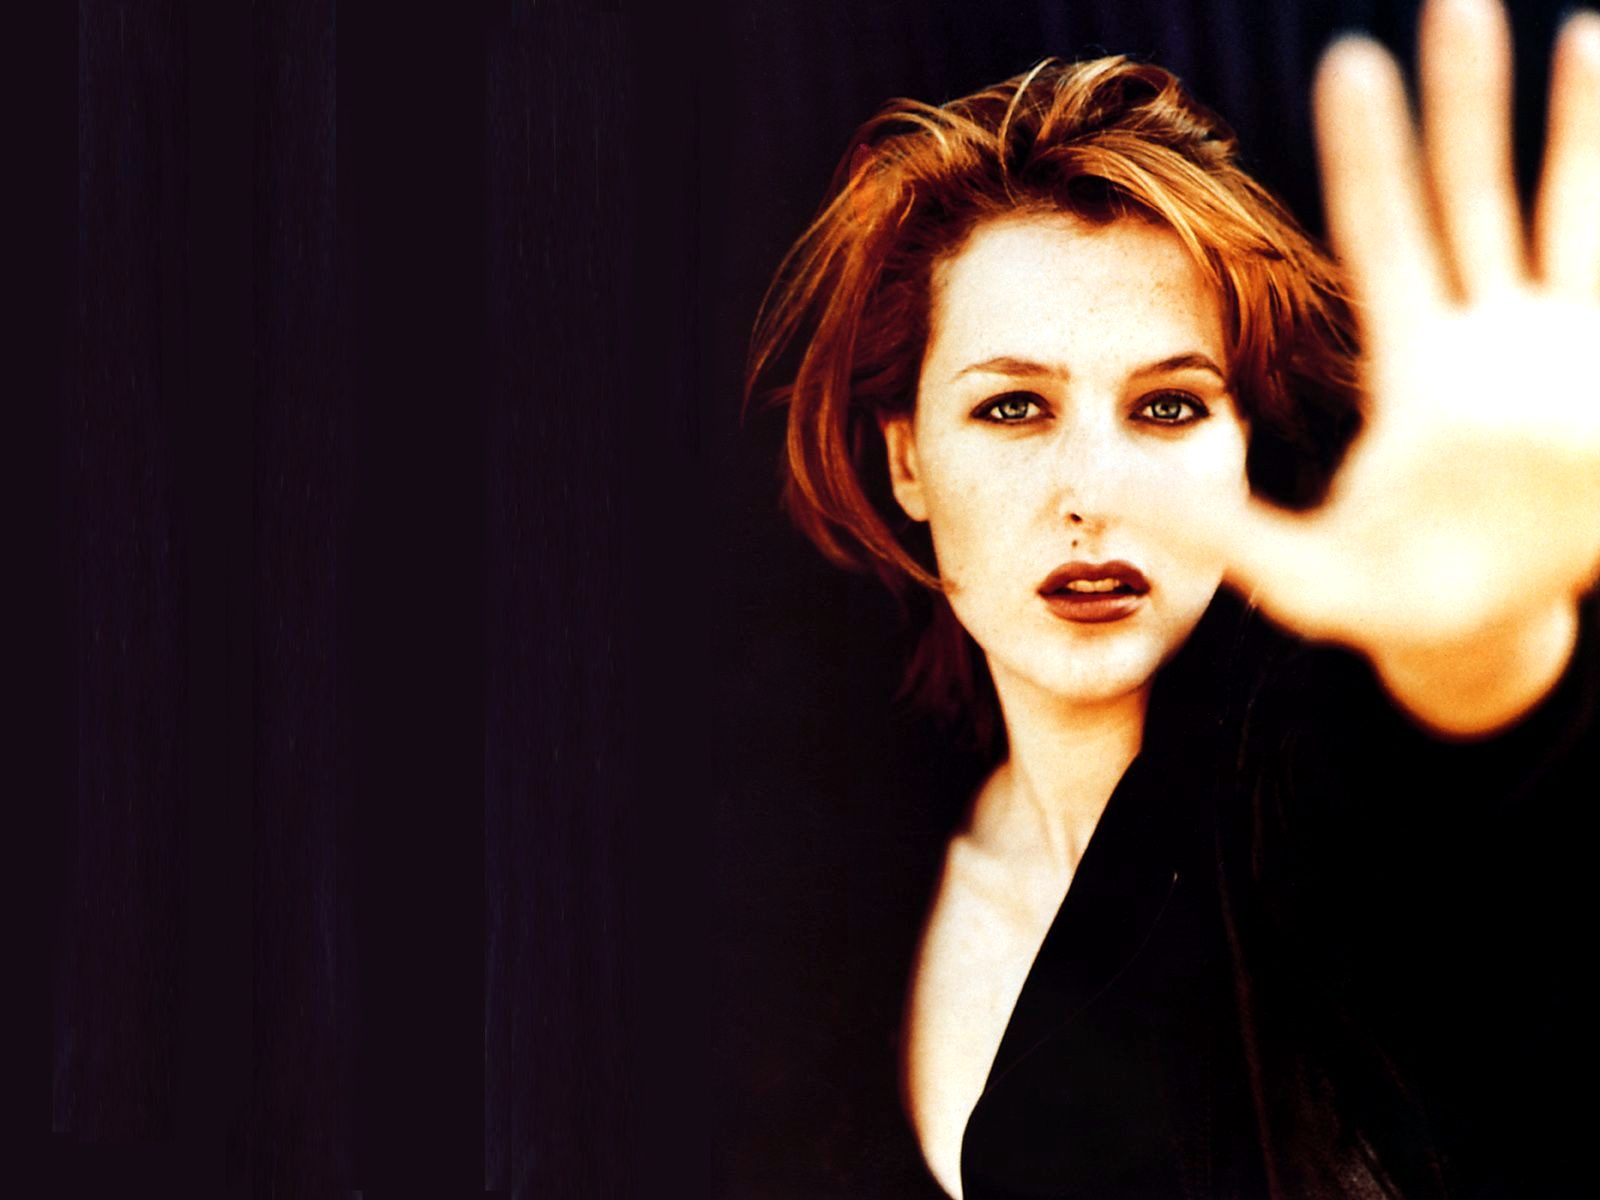 1600x1200 - Gillian Anderson Wallpapers 14